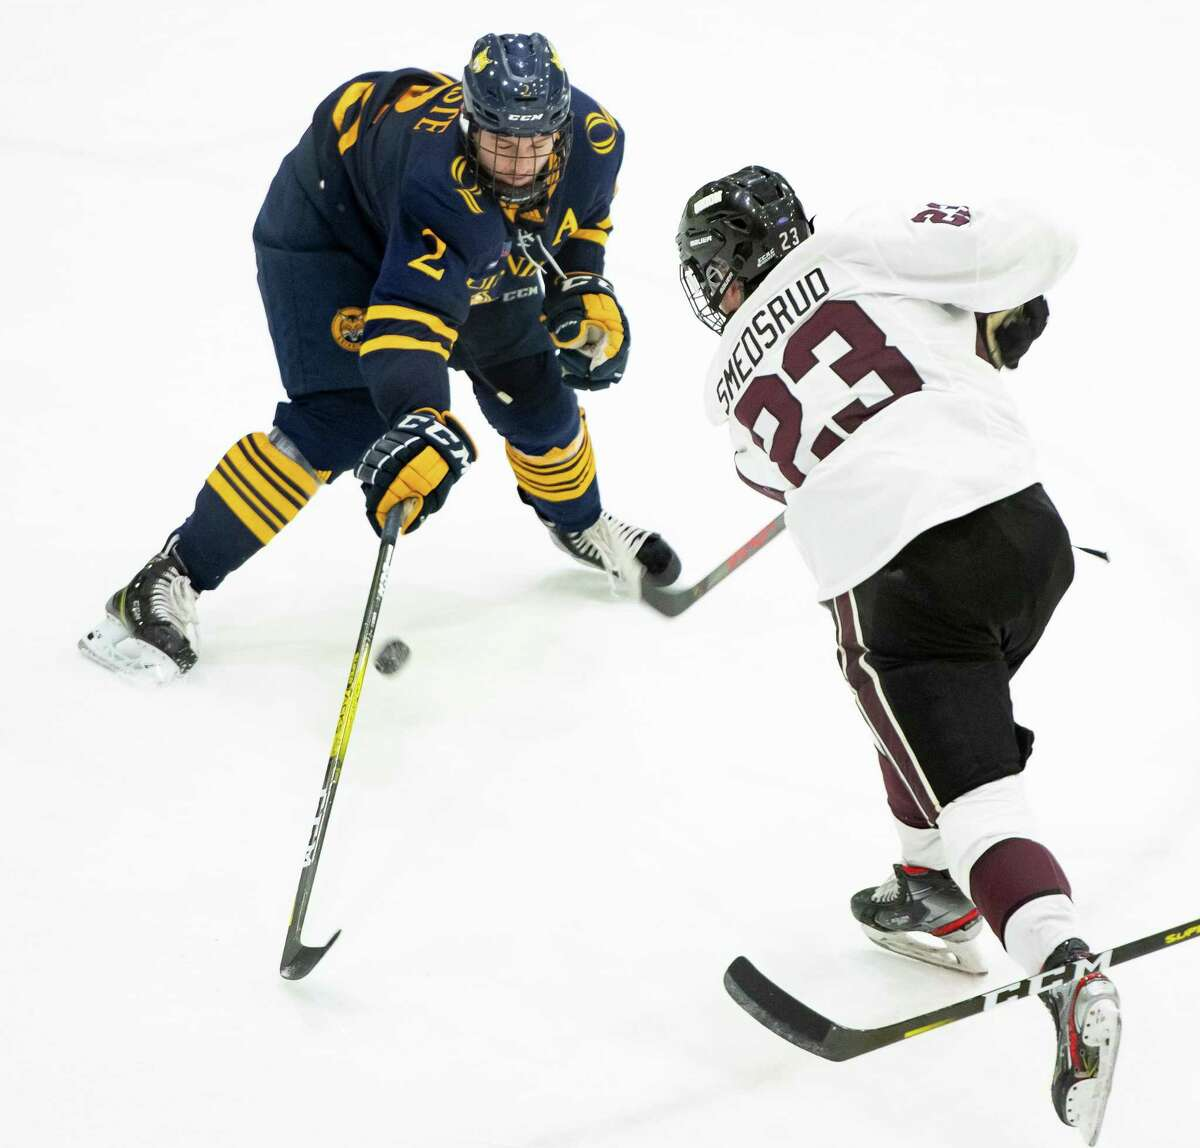 Quinnipiac defenseman Karlis Cukste attempts to block a shot by Union forward Chaz Smedsrud during a game in February.